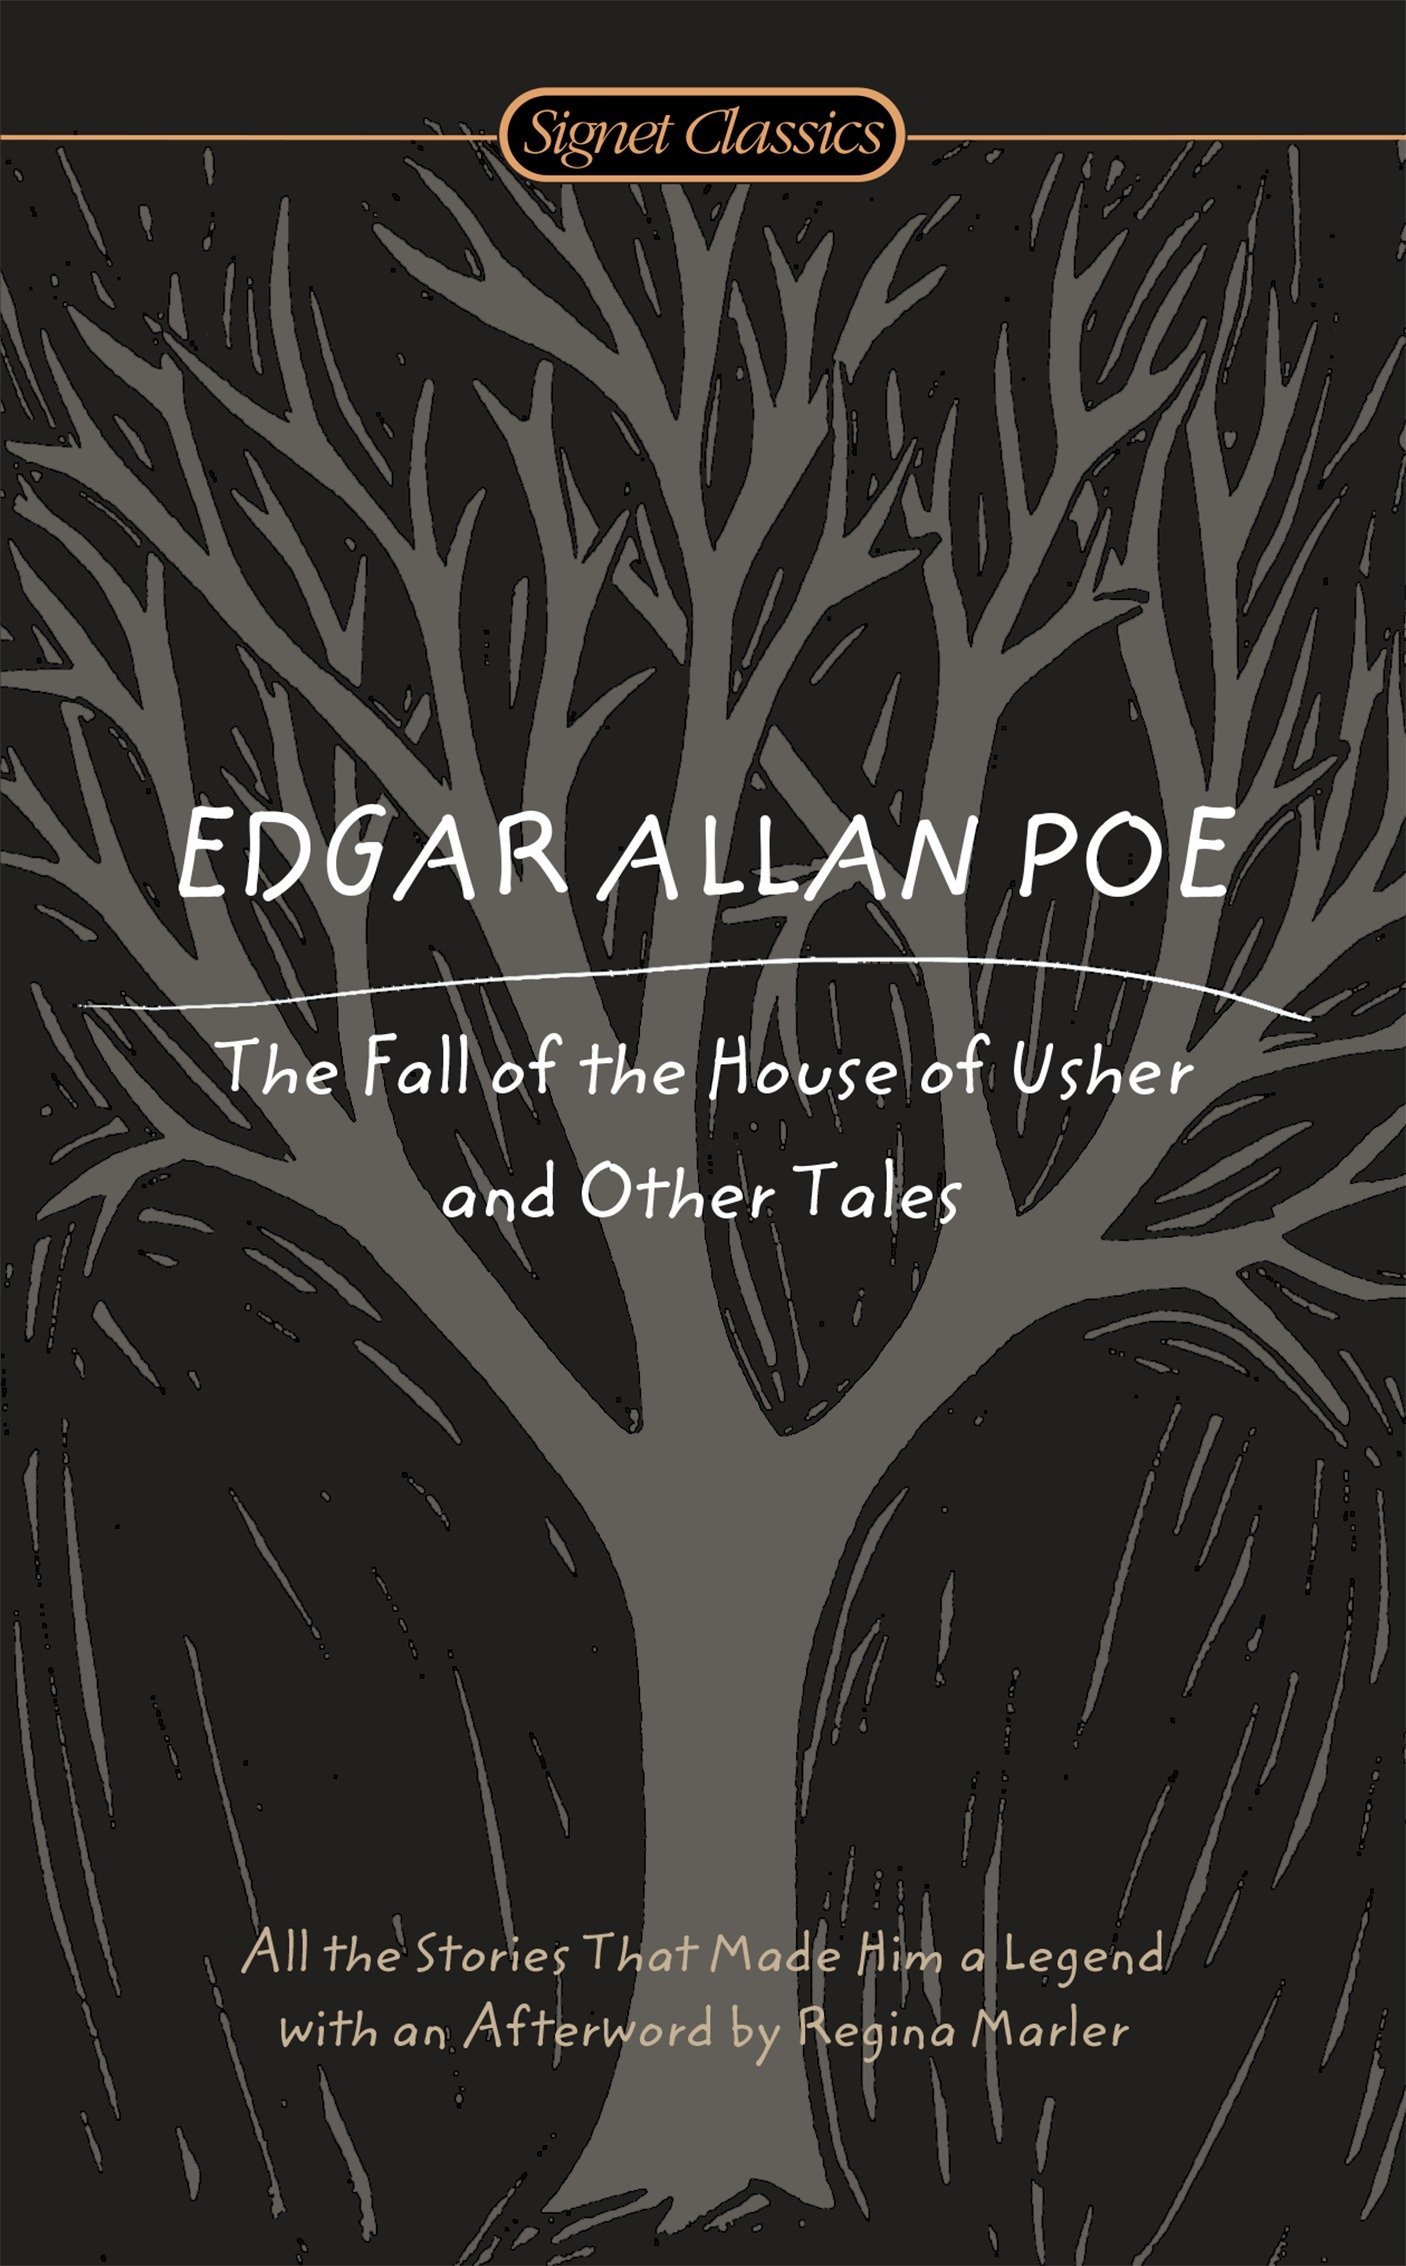 Amazon.com: The Fall of the House of Usher and Other Tales (Signet Classics)  (9780451530318): Edgar Allan Poe, Stephen Marlowe, Regina Marler: Books